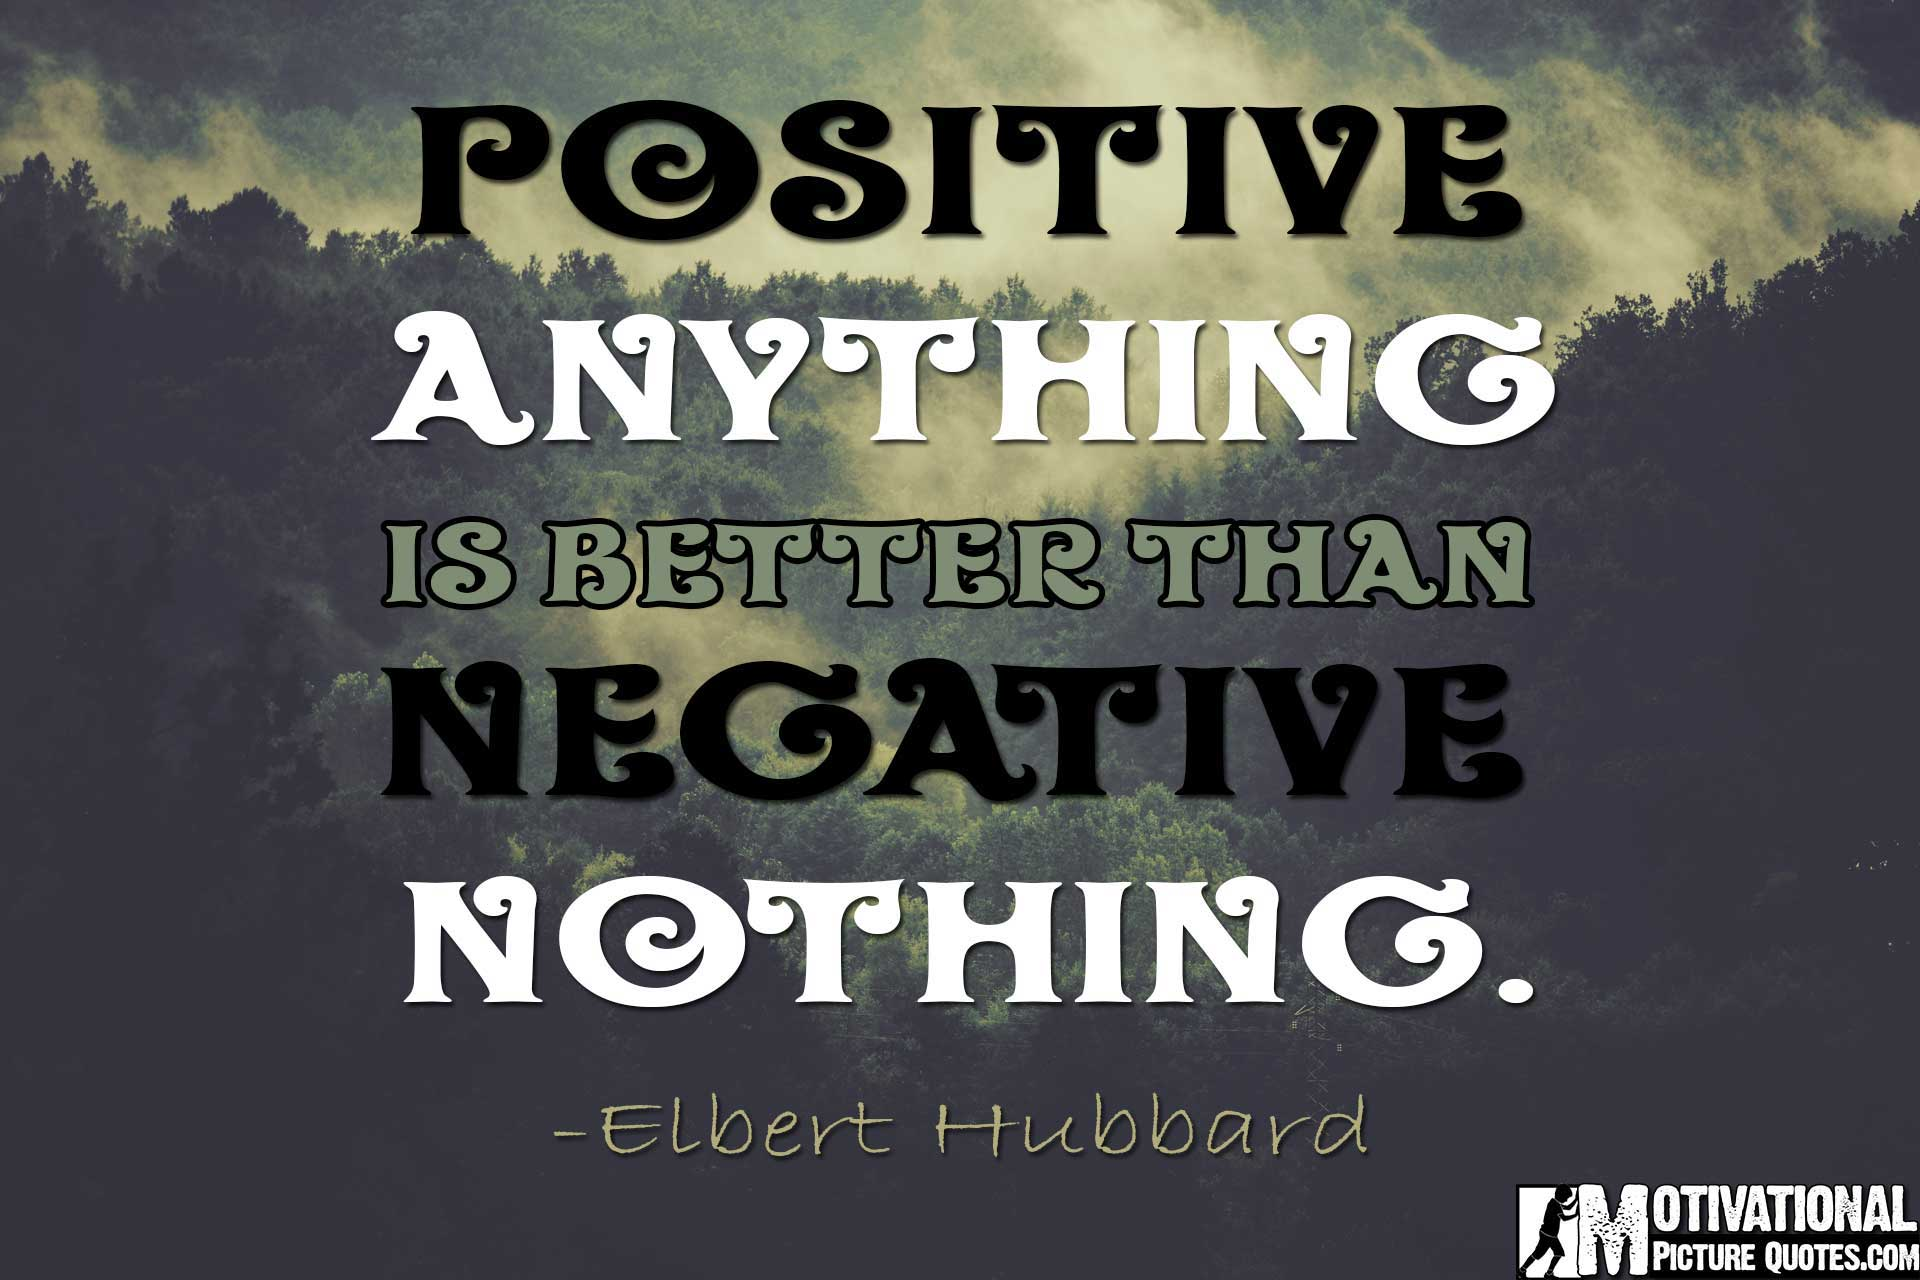 Have Positive Thoughts Quotes: The Power Of Positive Thinking Quotes With Pictures